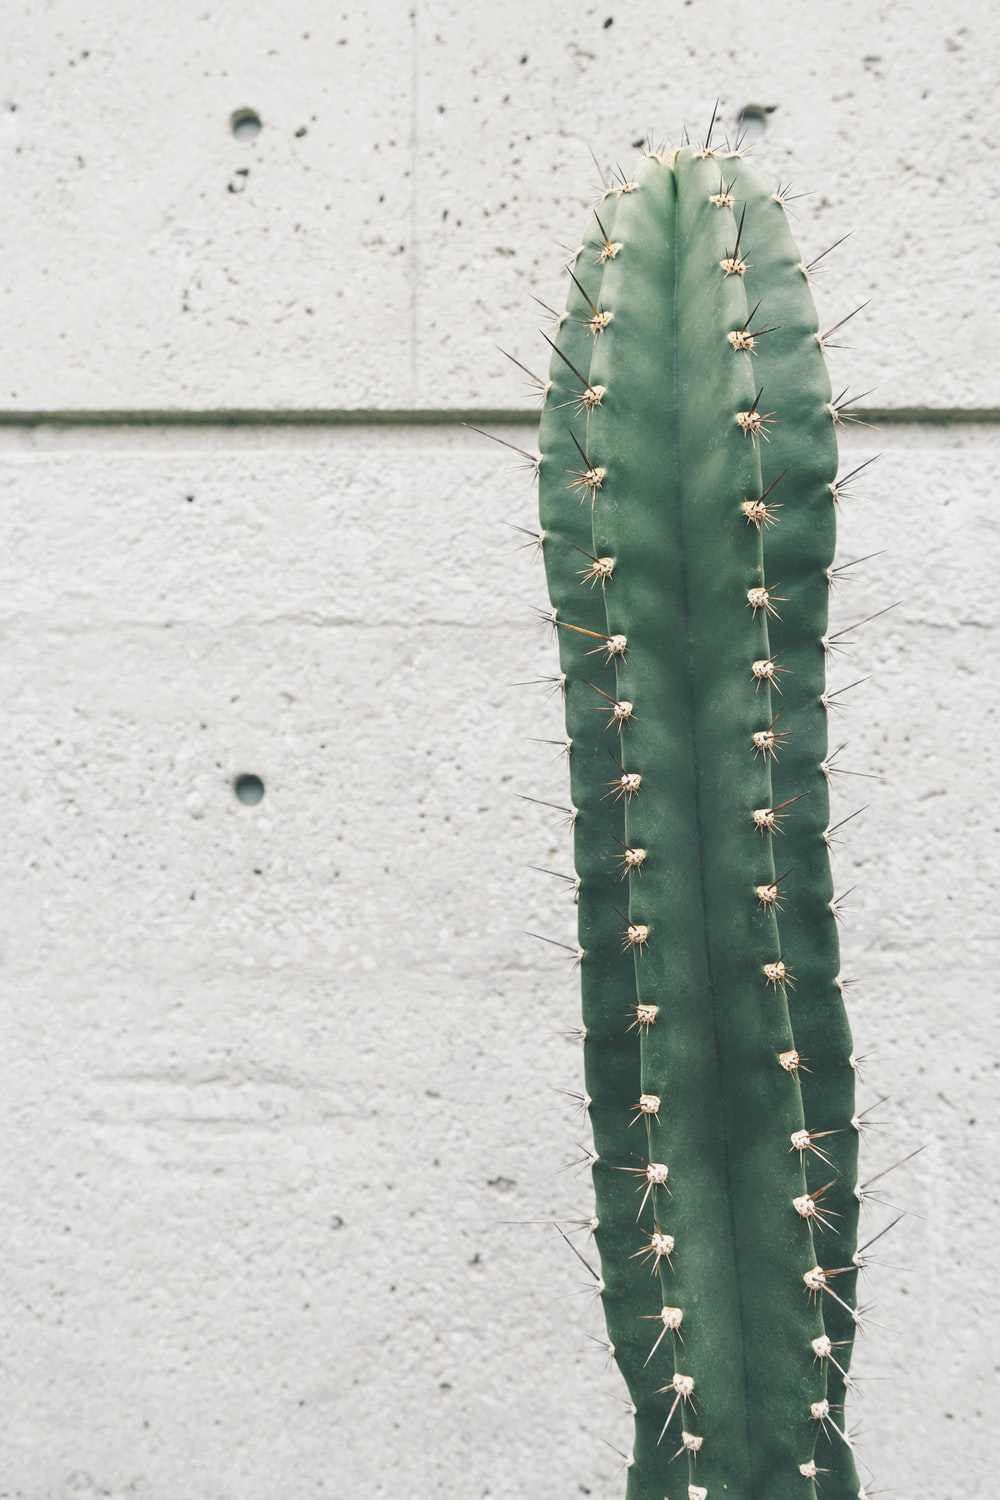 green cactus near wall